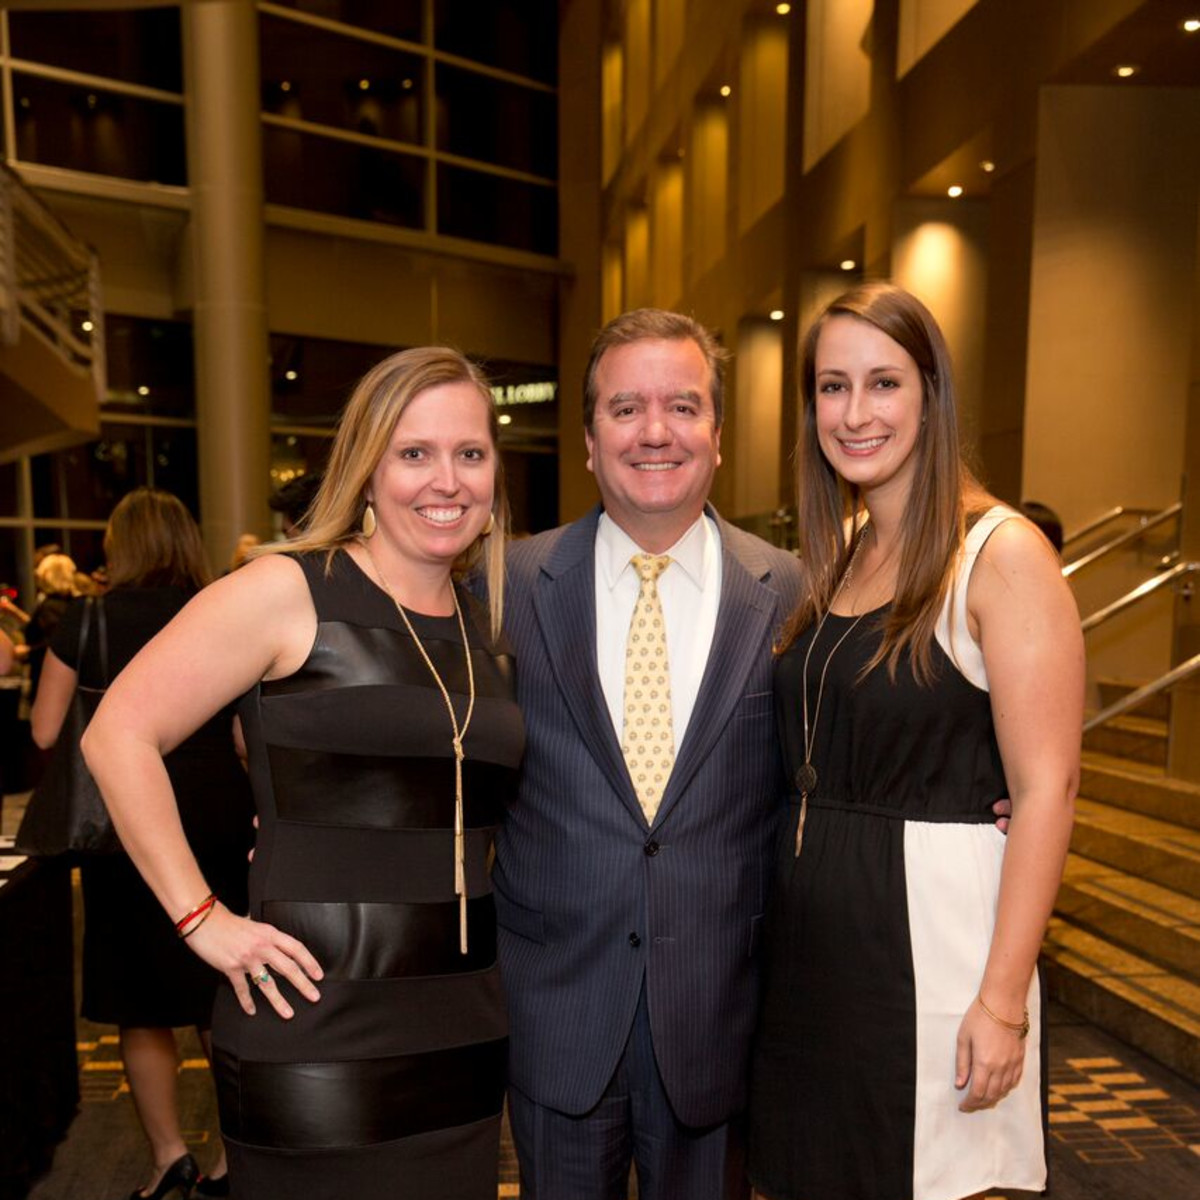 Tennis gala, Feb. 2016, Bronwyn Greer, Joe Bendy, Haley Leffler